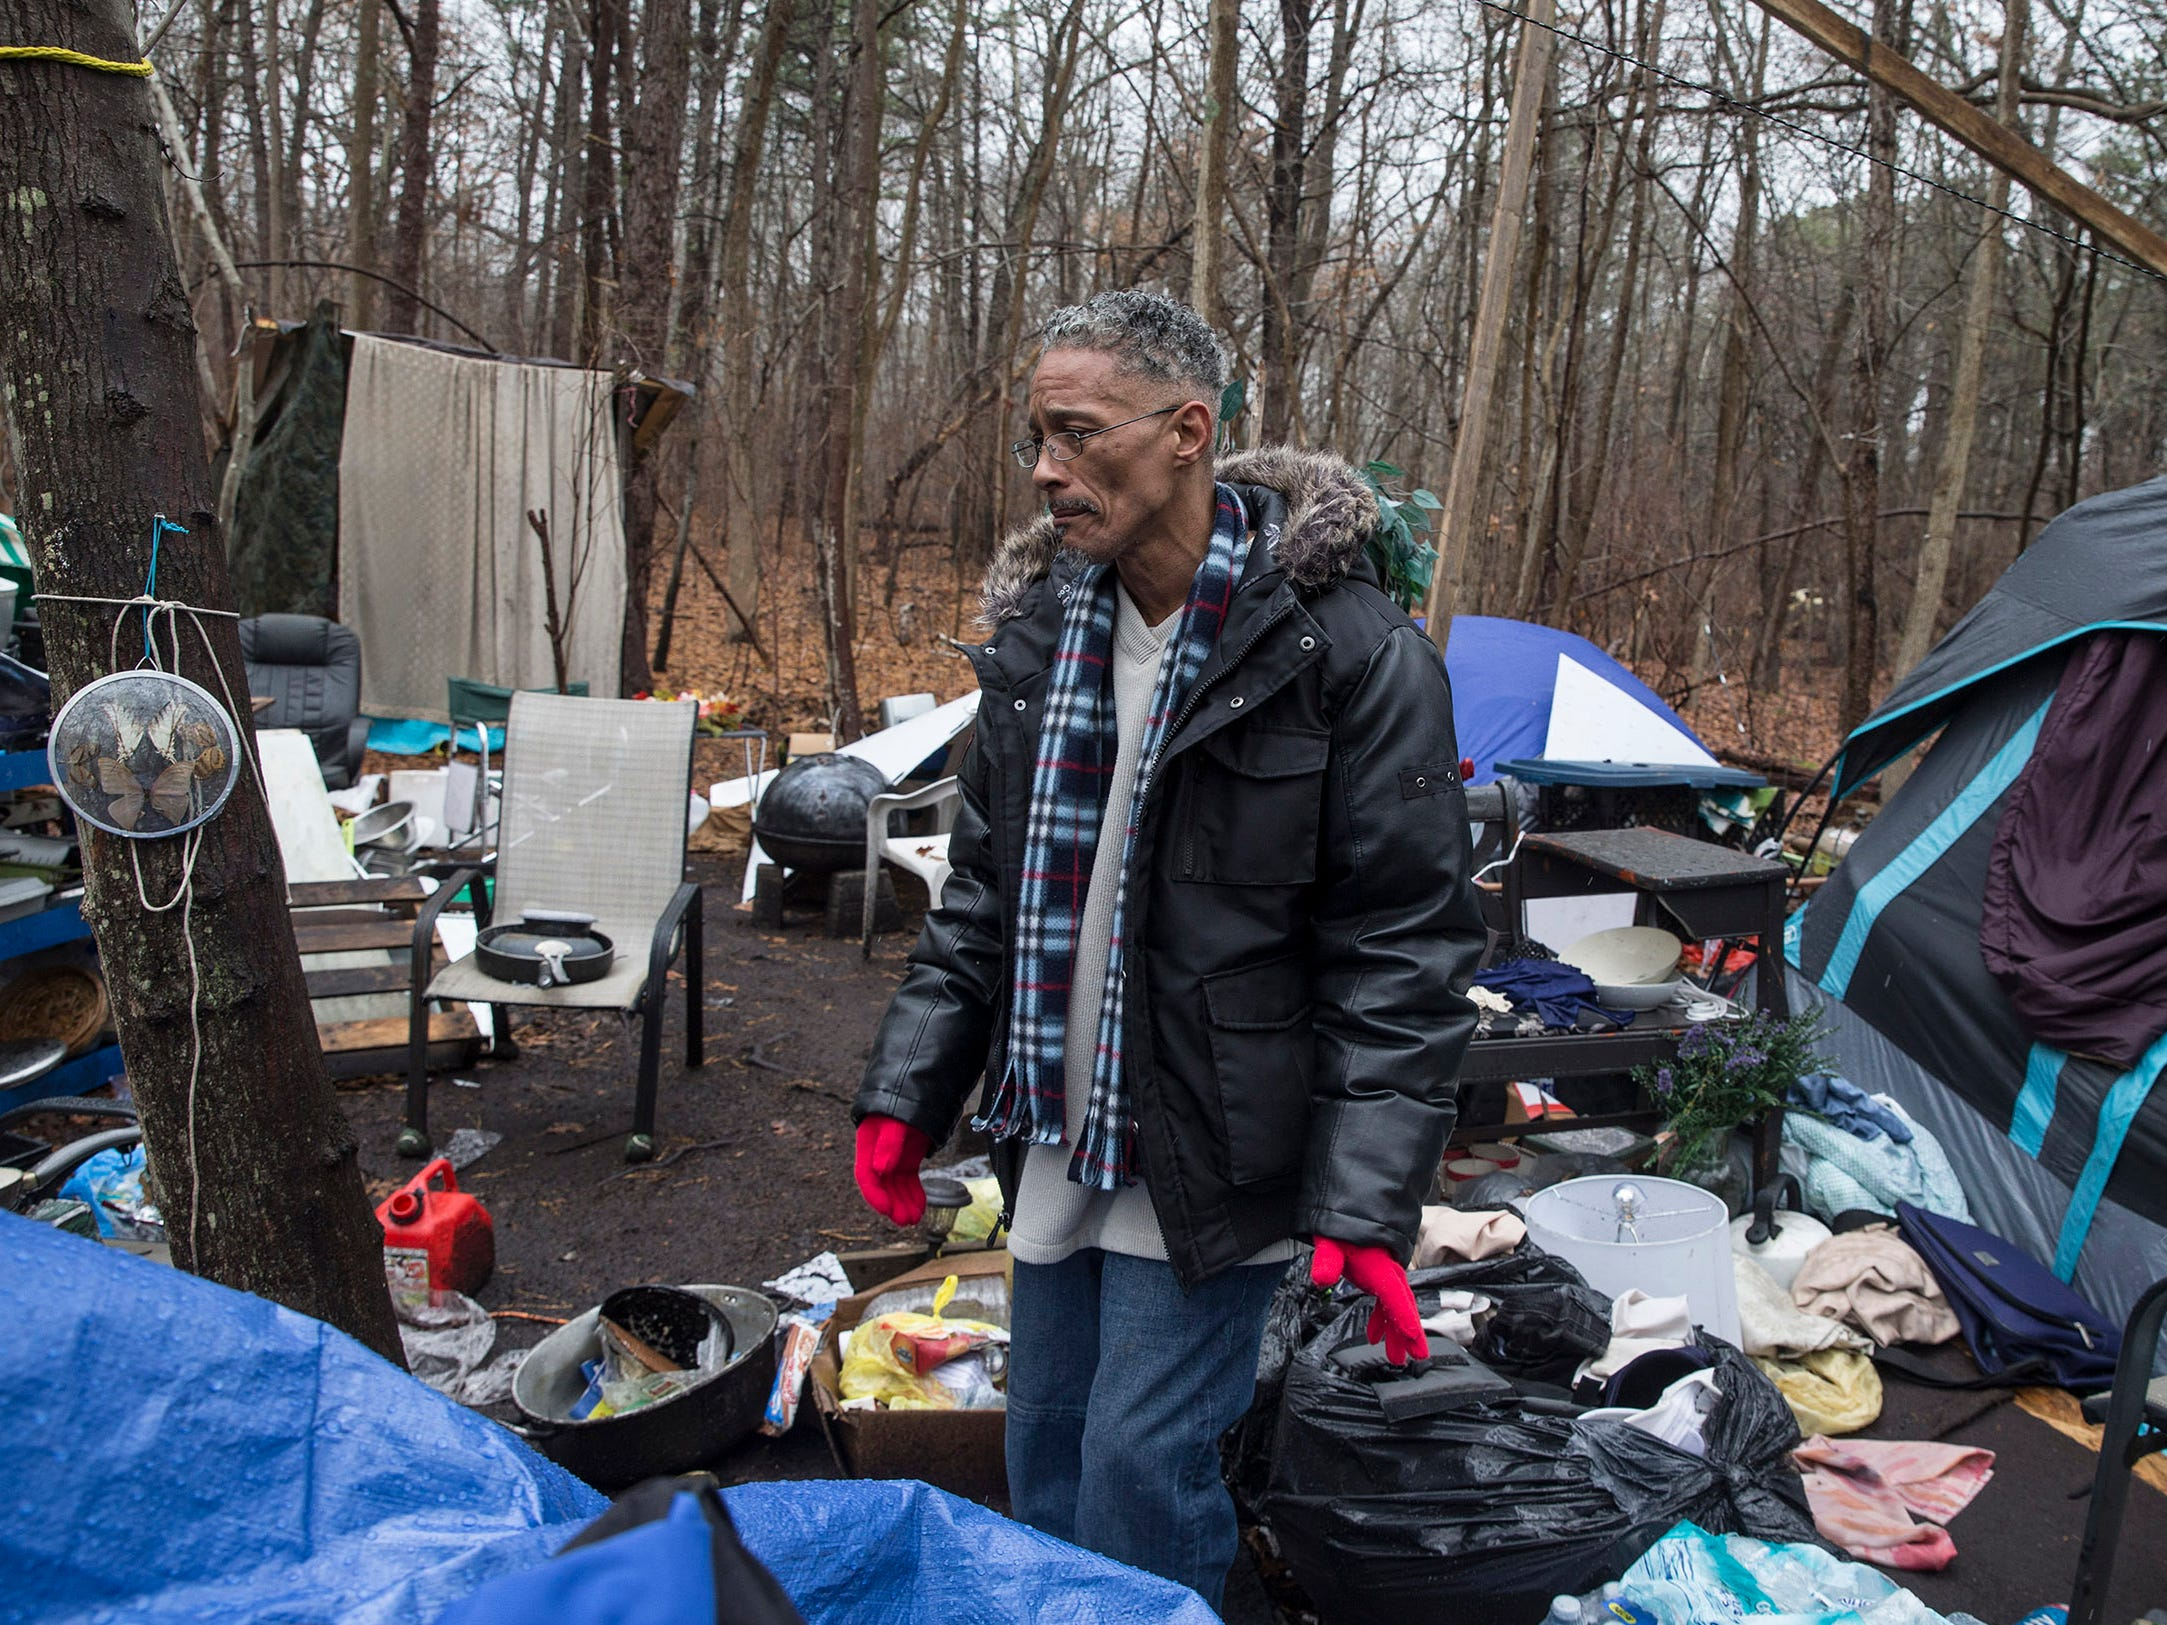 Carlos Santiago returns to the camp to start cleaning up in preparation for the groups return. About one dozen homeless people who live in a small encampment in the woods have been staying at the Crystal Inn since severe cold weather and snow hit the area. Donations collected made the hotel stay possible. Neptune, NJ on Wednesday, January 17, 2018